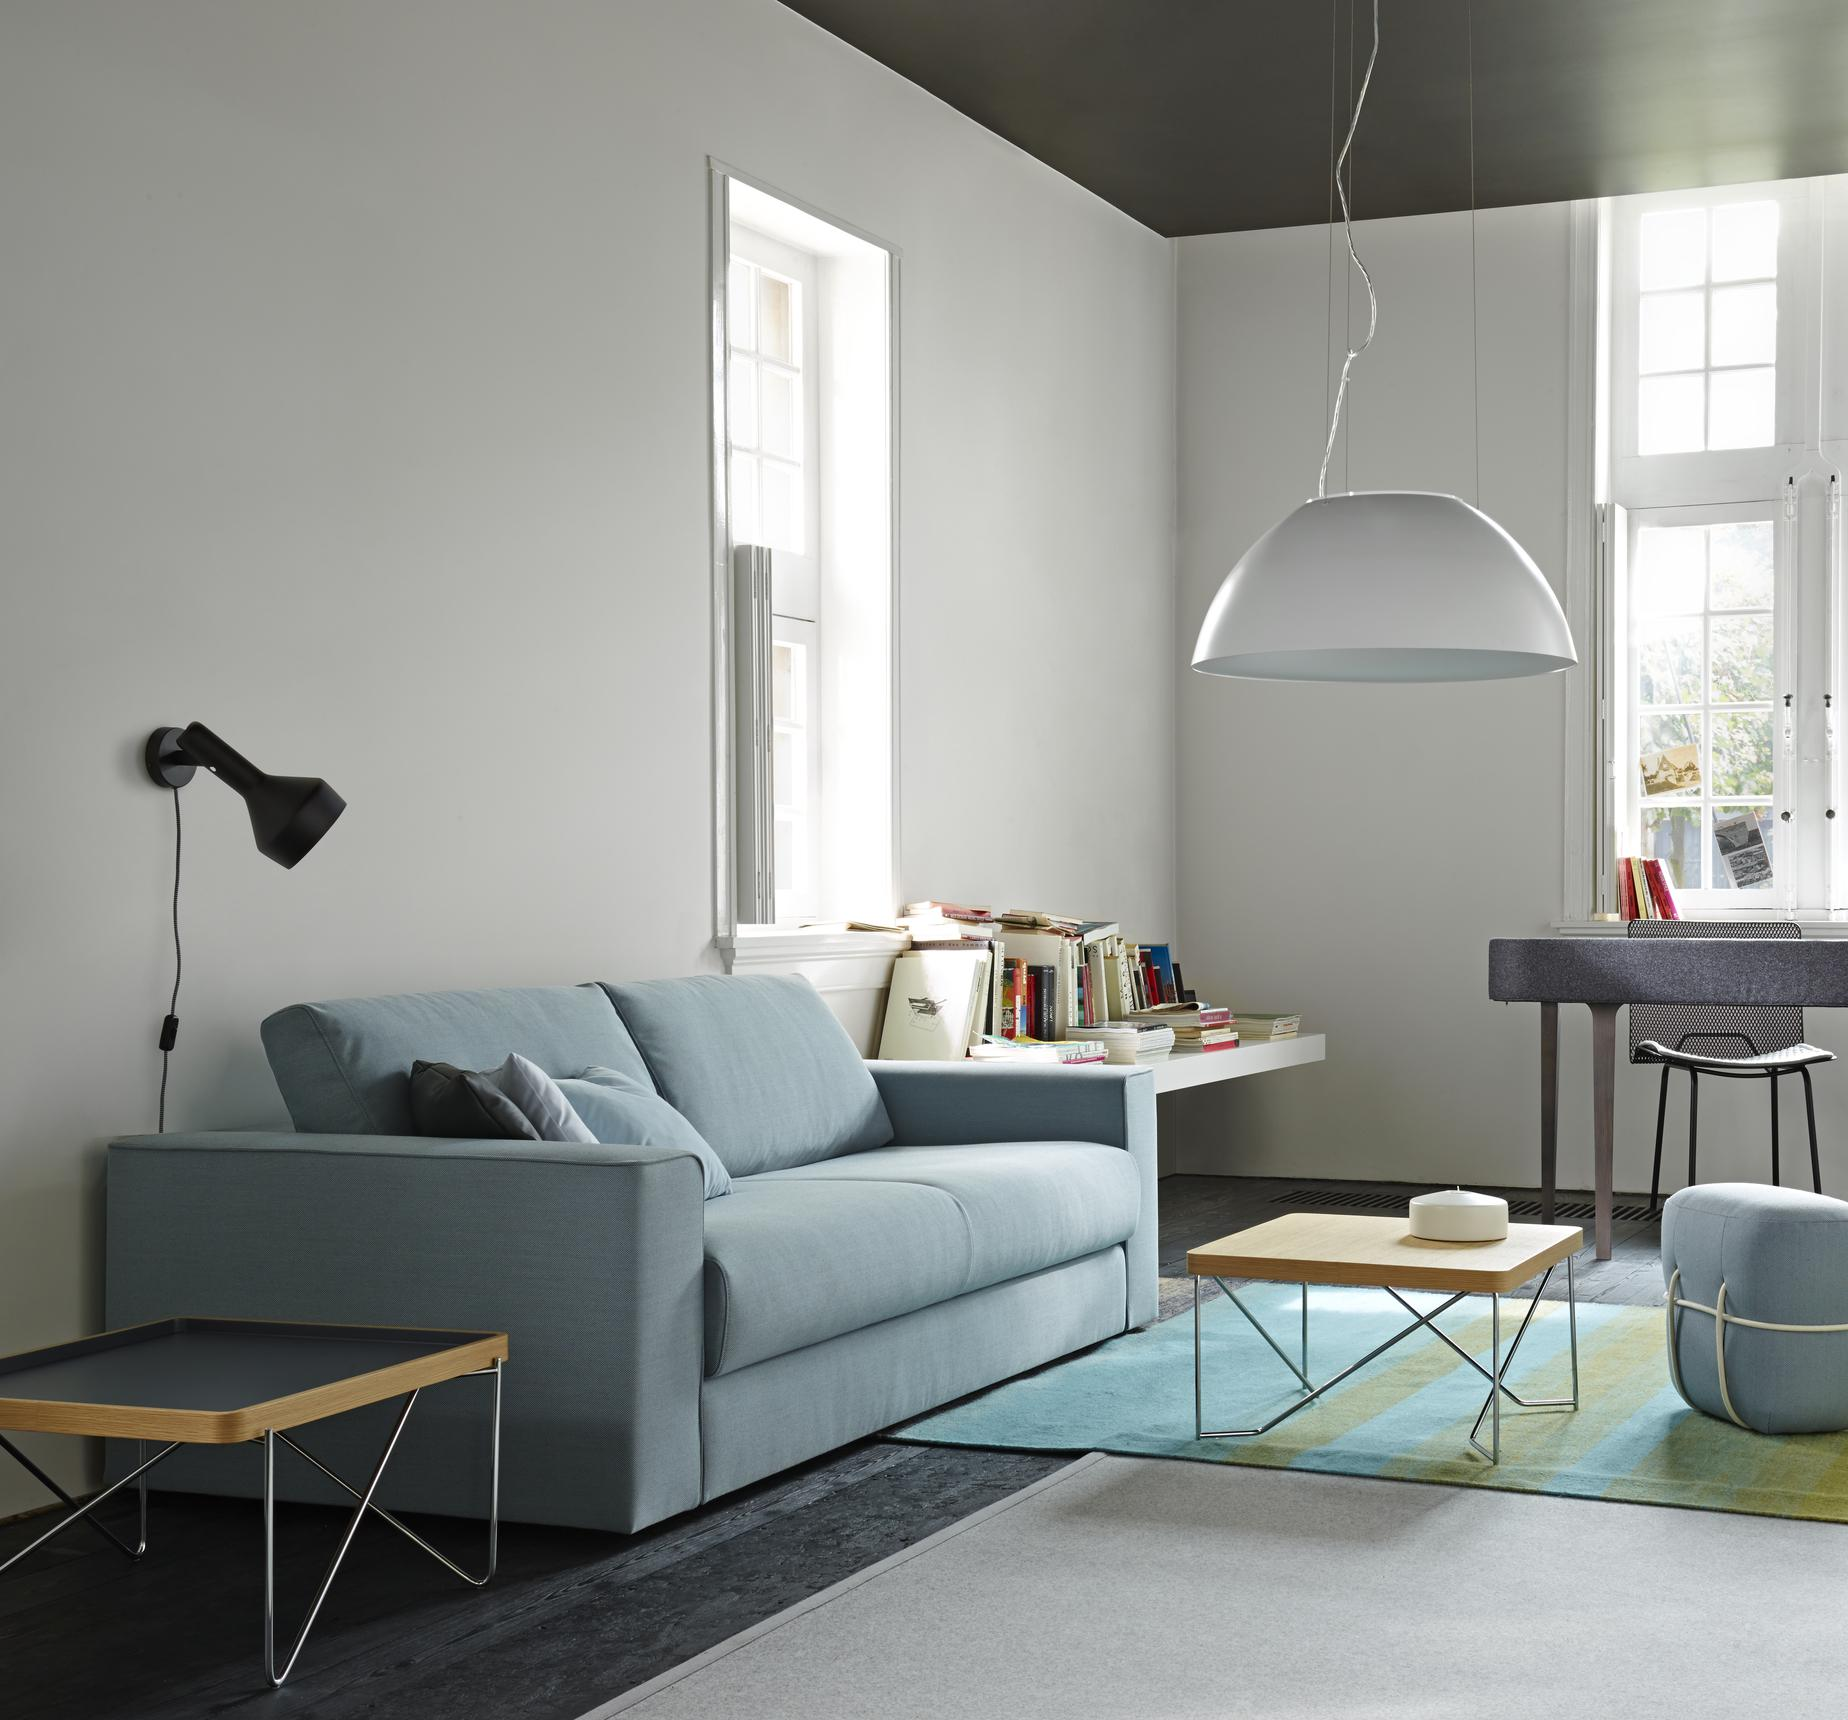 Canapés Ligne Roset Do Not Disturb Sofa Beds From Designer Ligne Roset